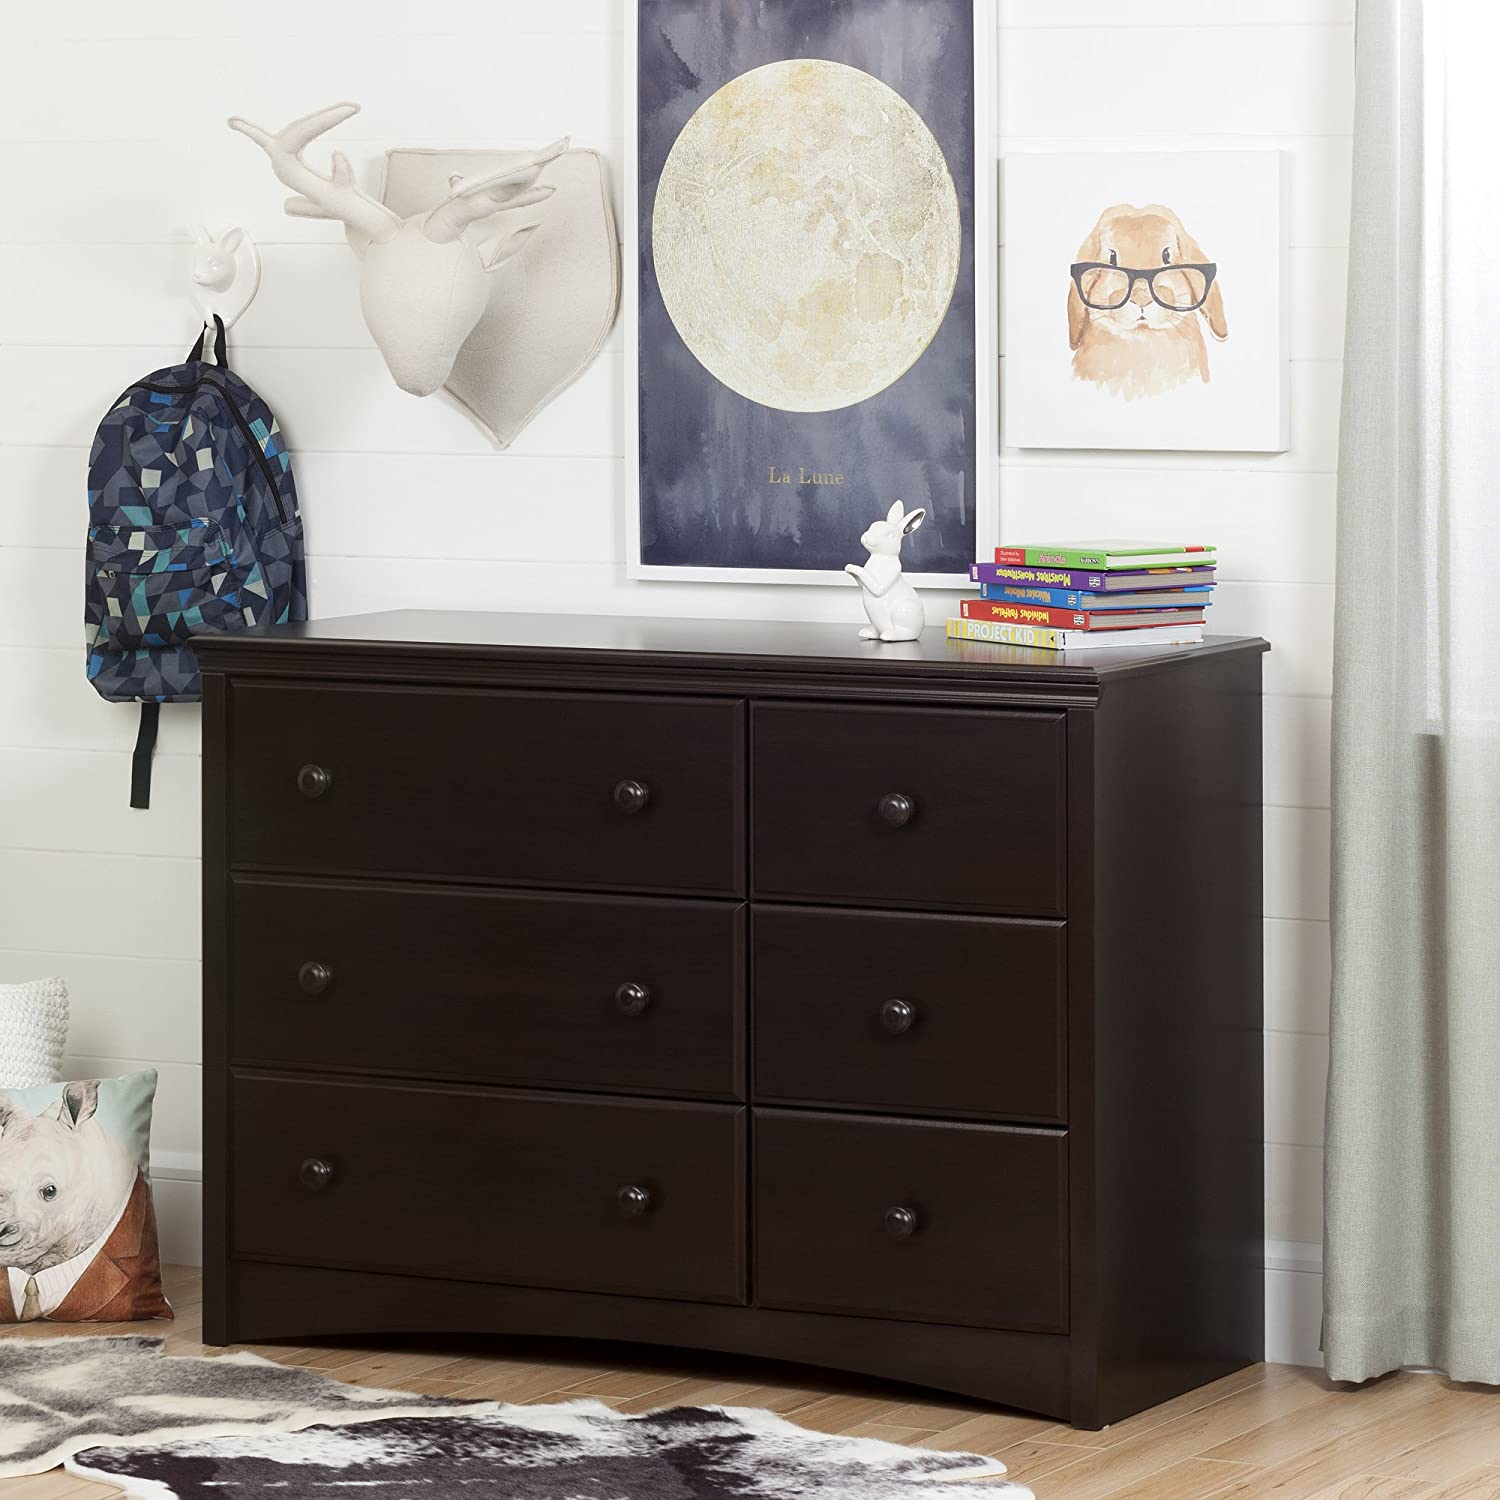 Perfect Amazon.com : South Shore Furniture Angel Changing Table With 6 Drawers,  Espresso : Baby